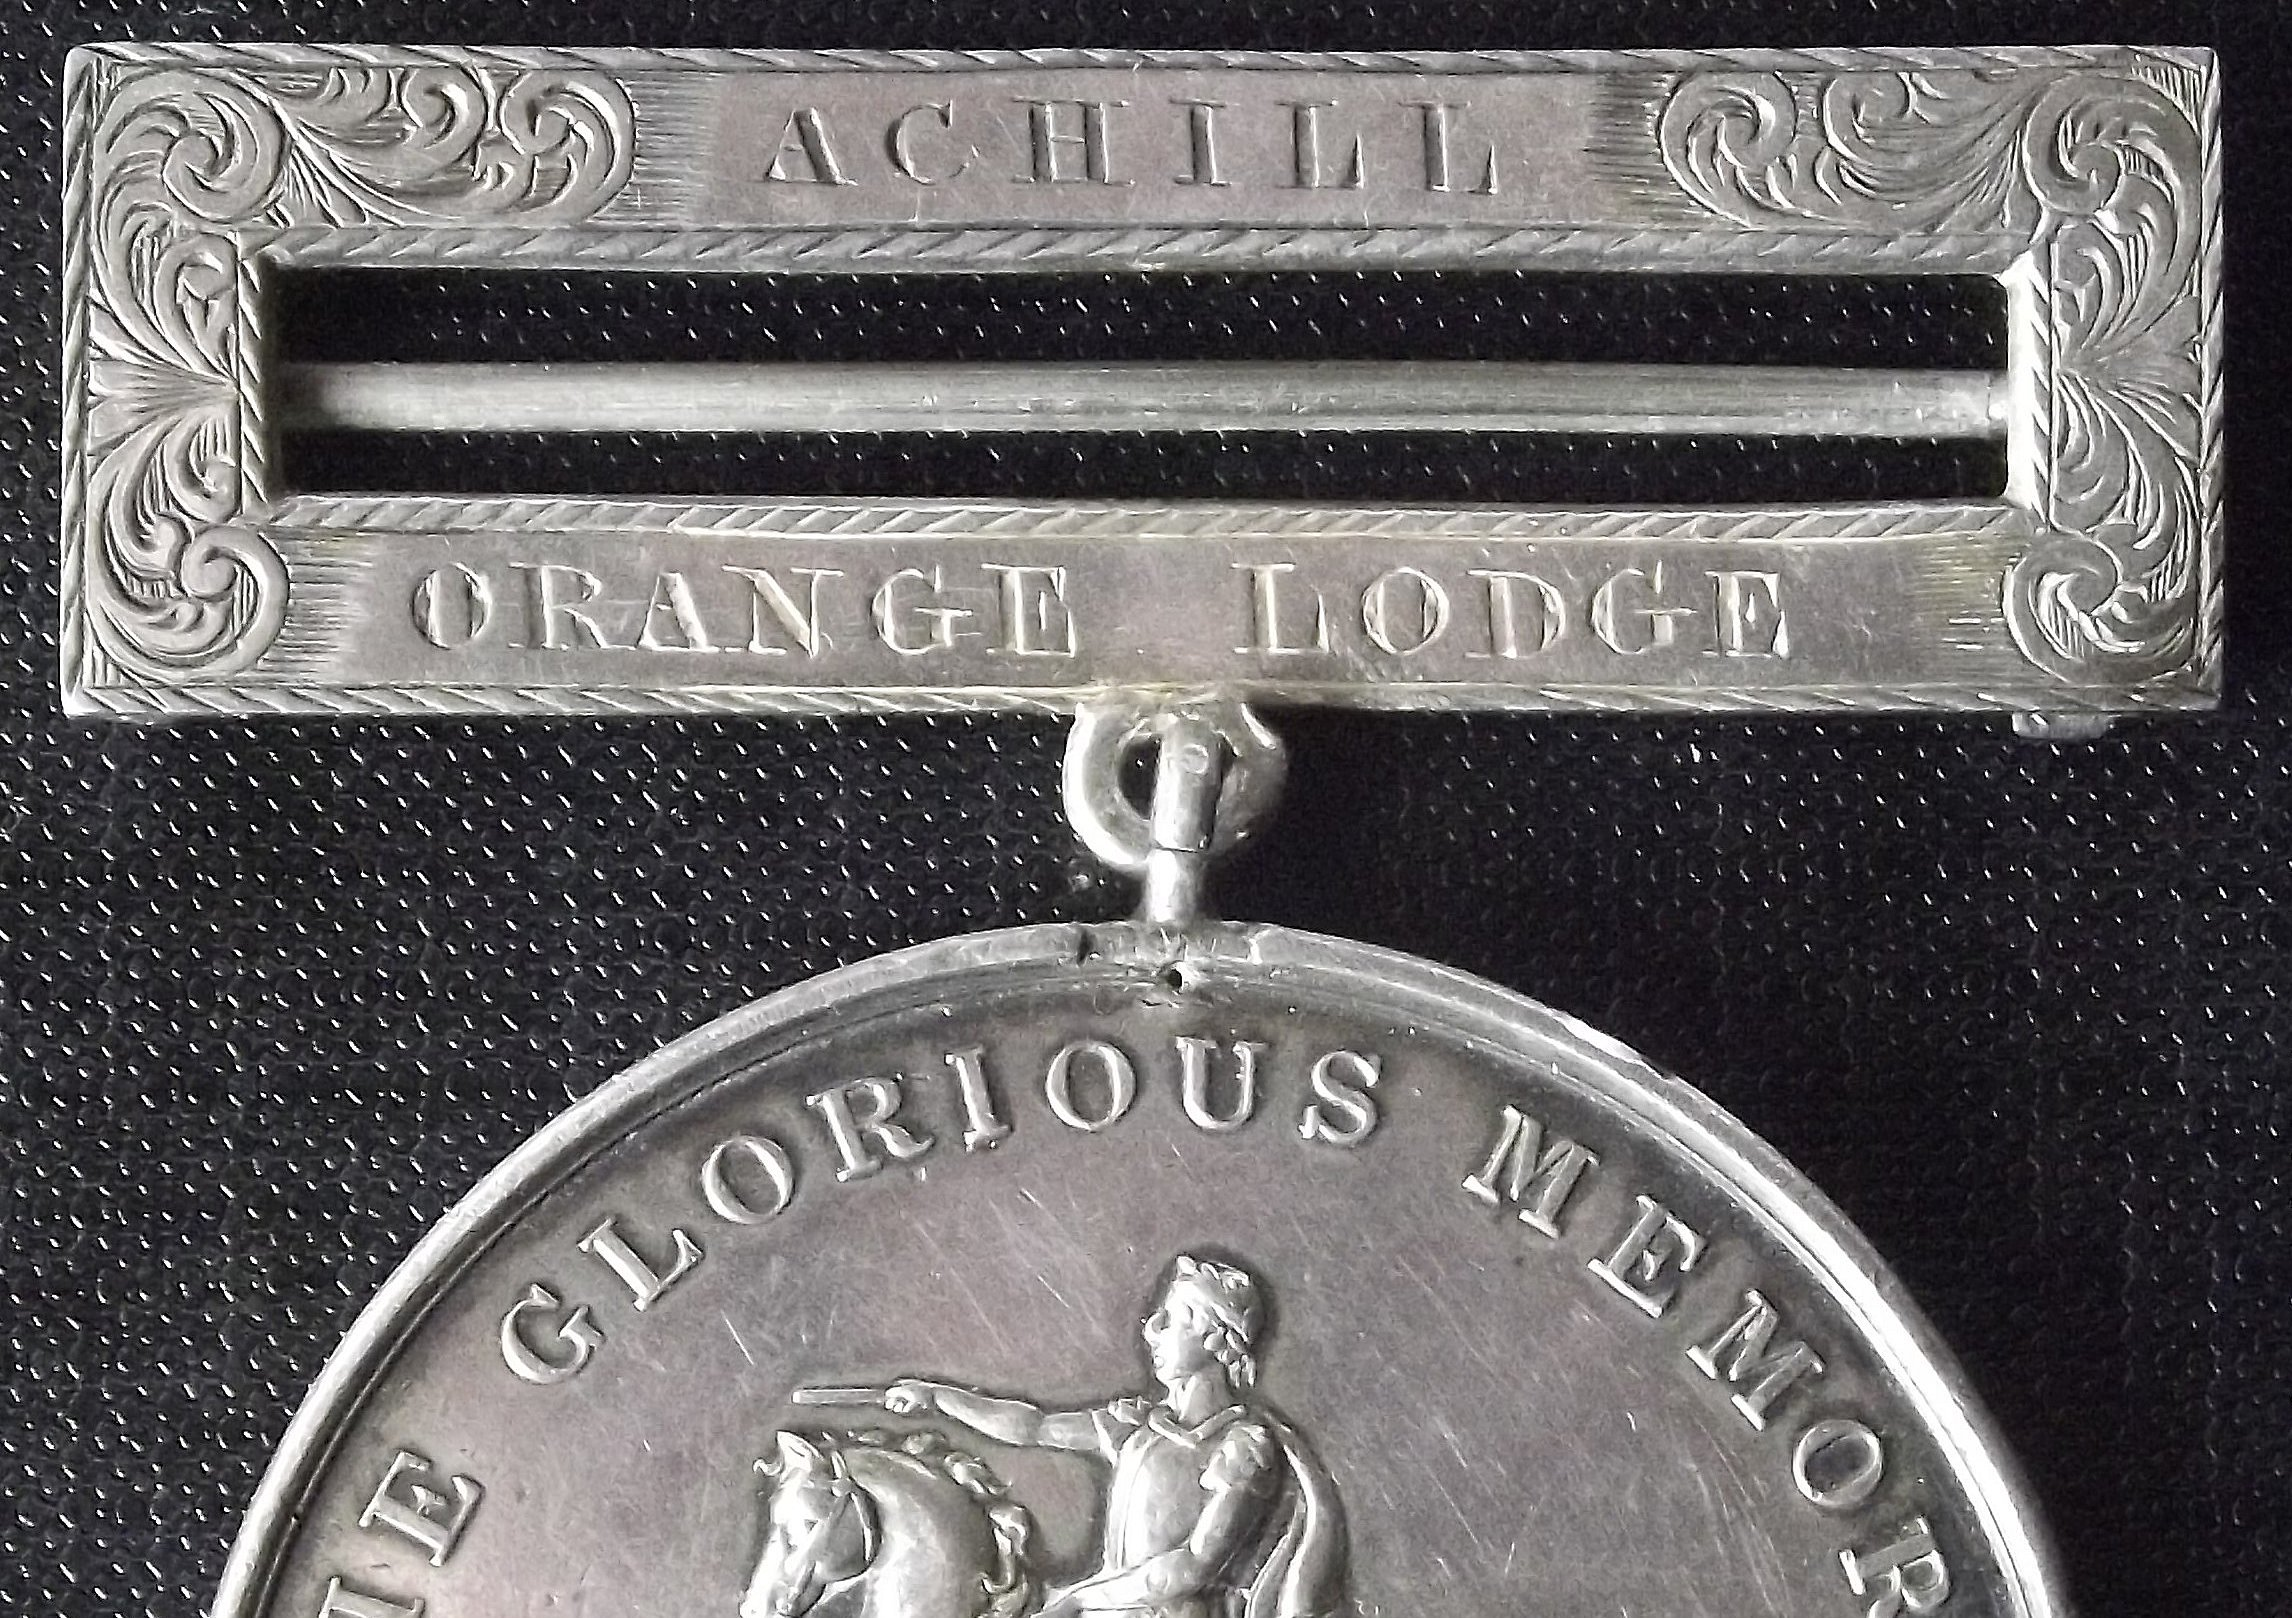 Achill Island Orange Lodge1854 medal (private   collection)